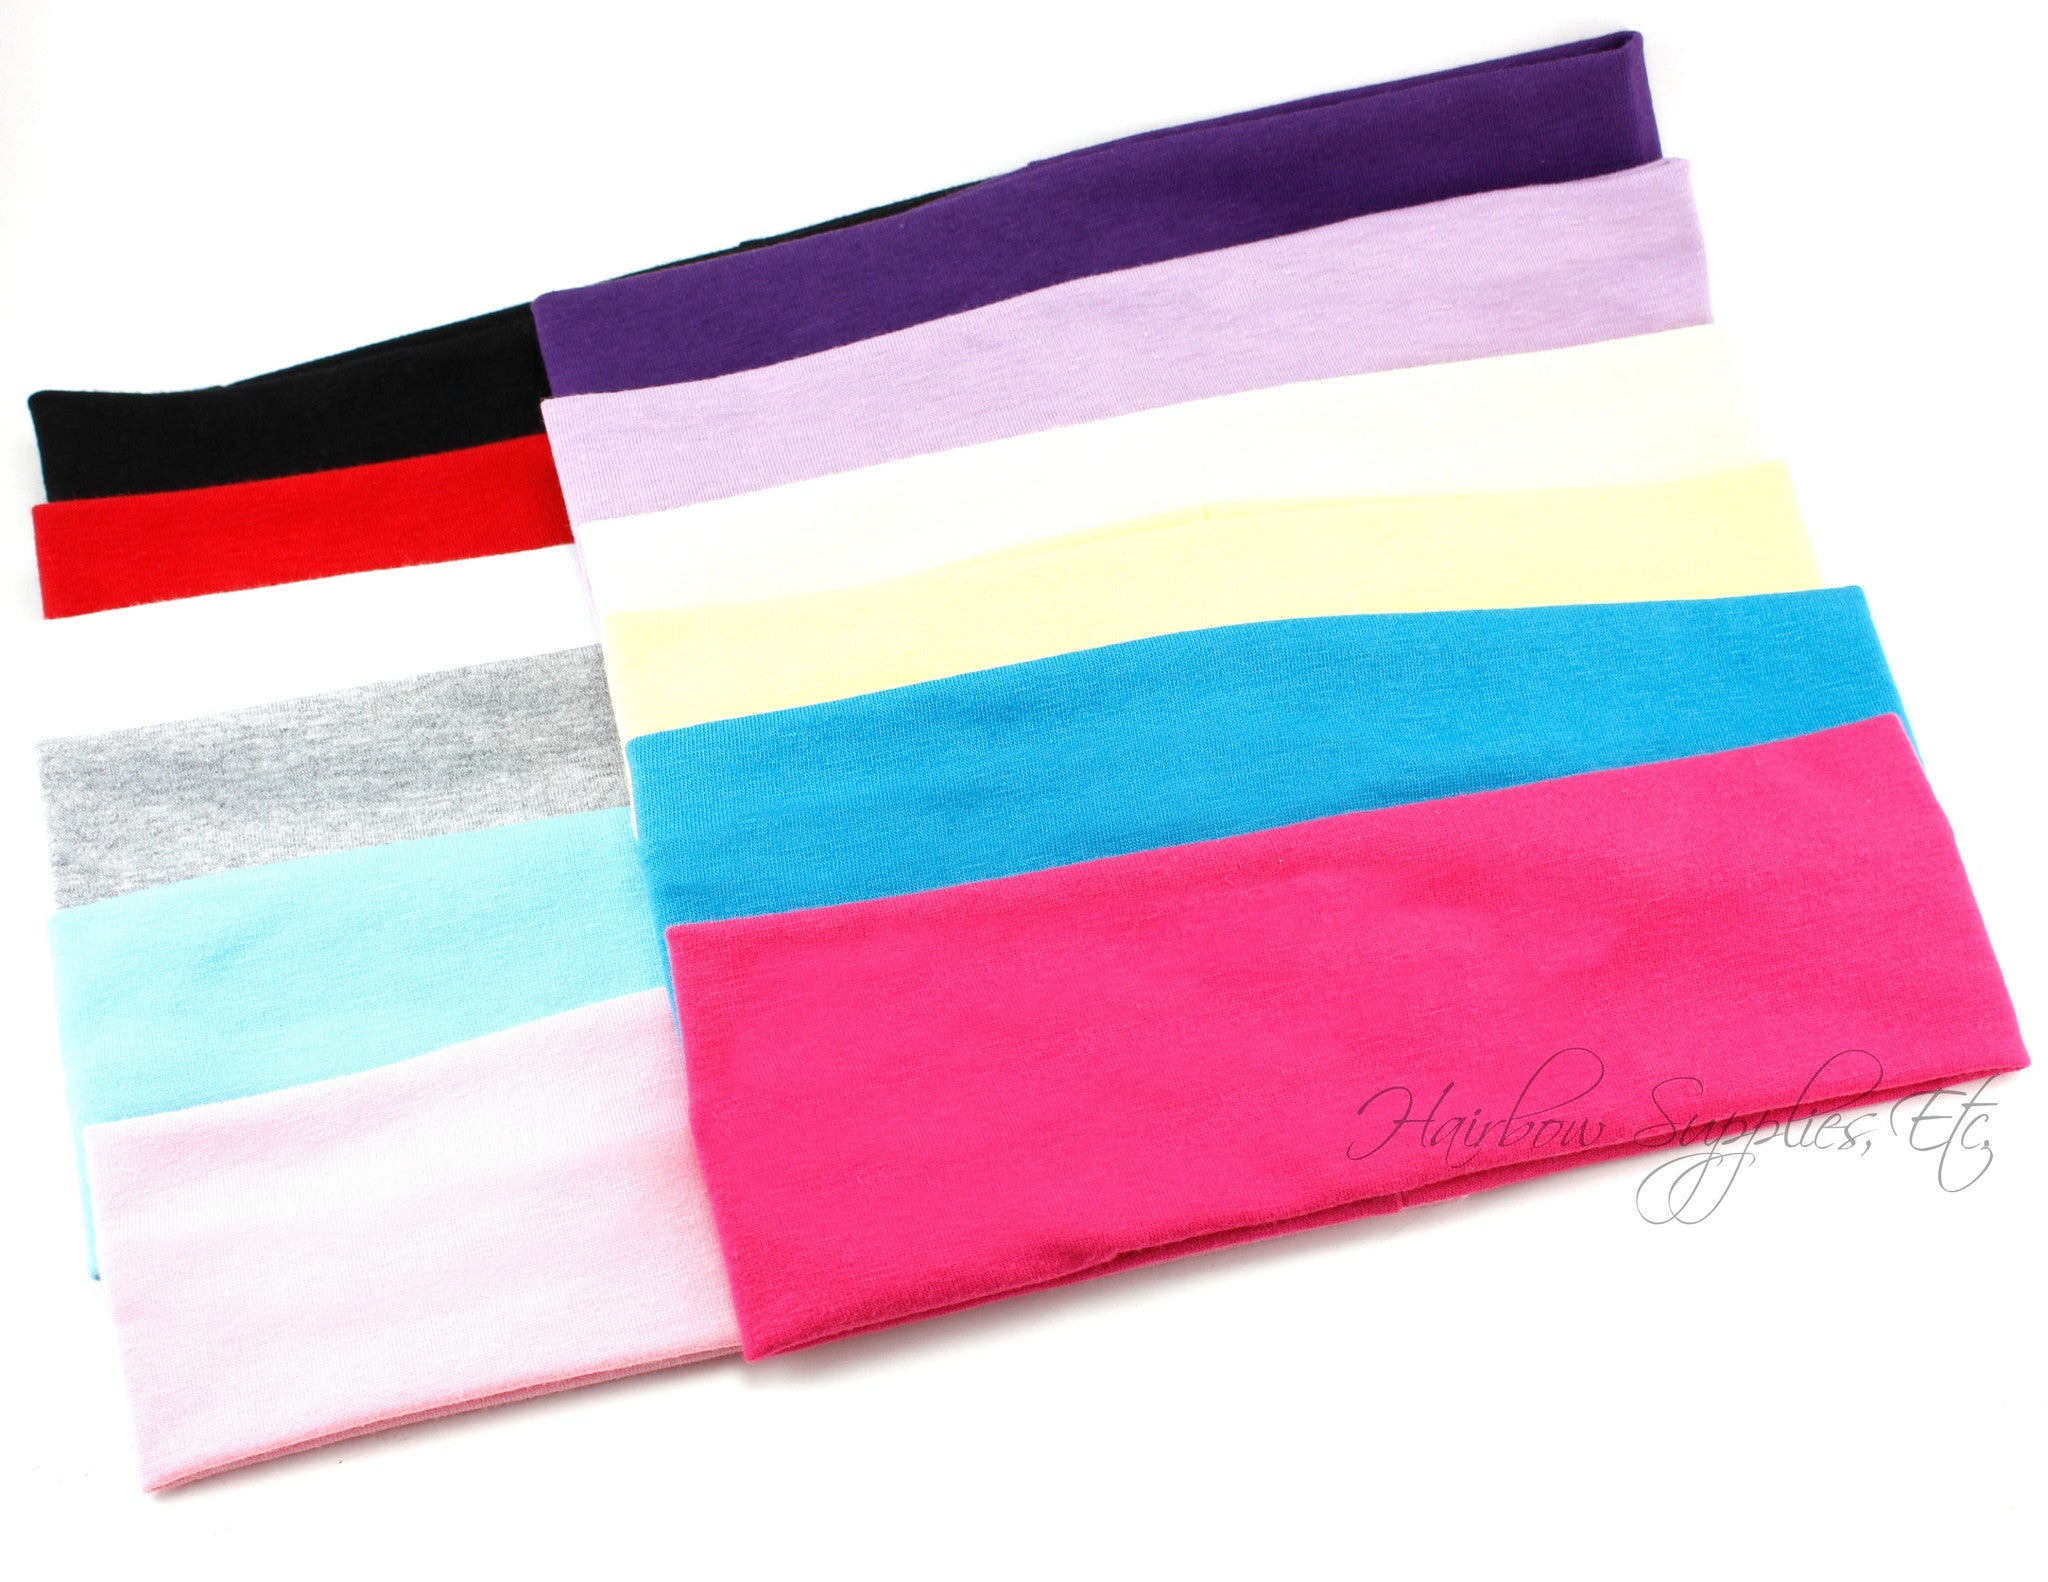 Soft cotton headwraps 2 inch